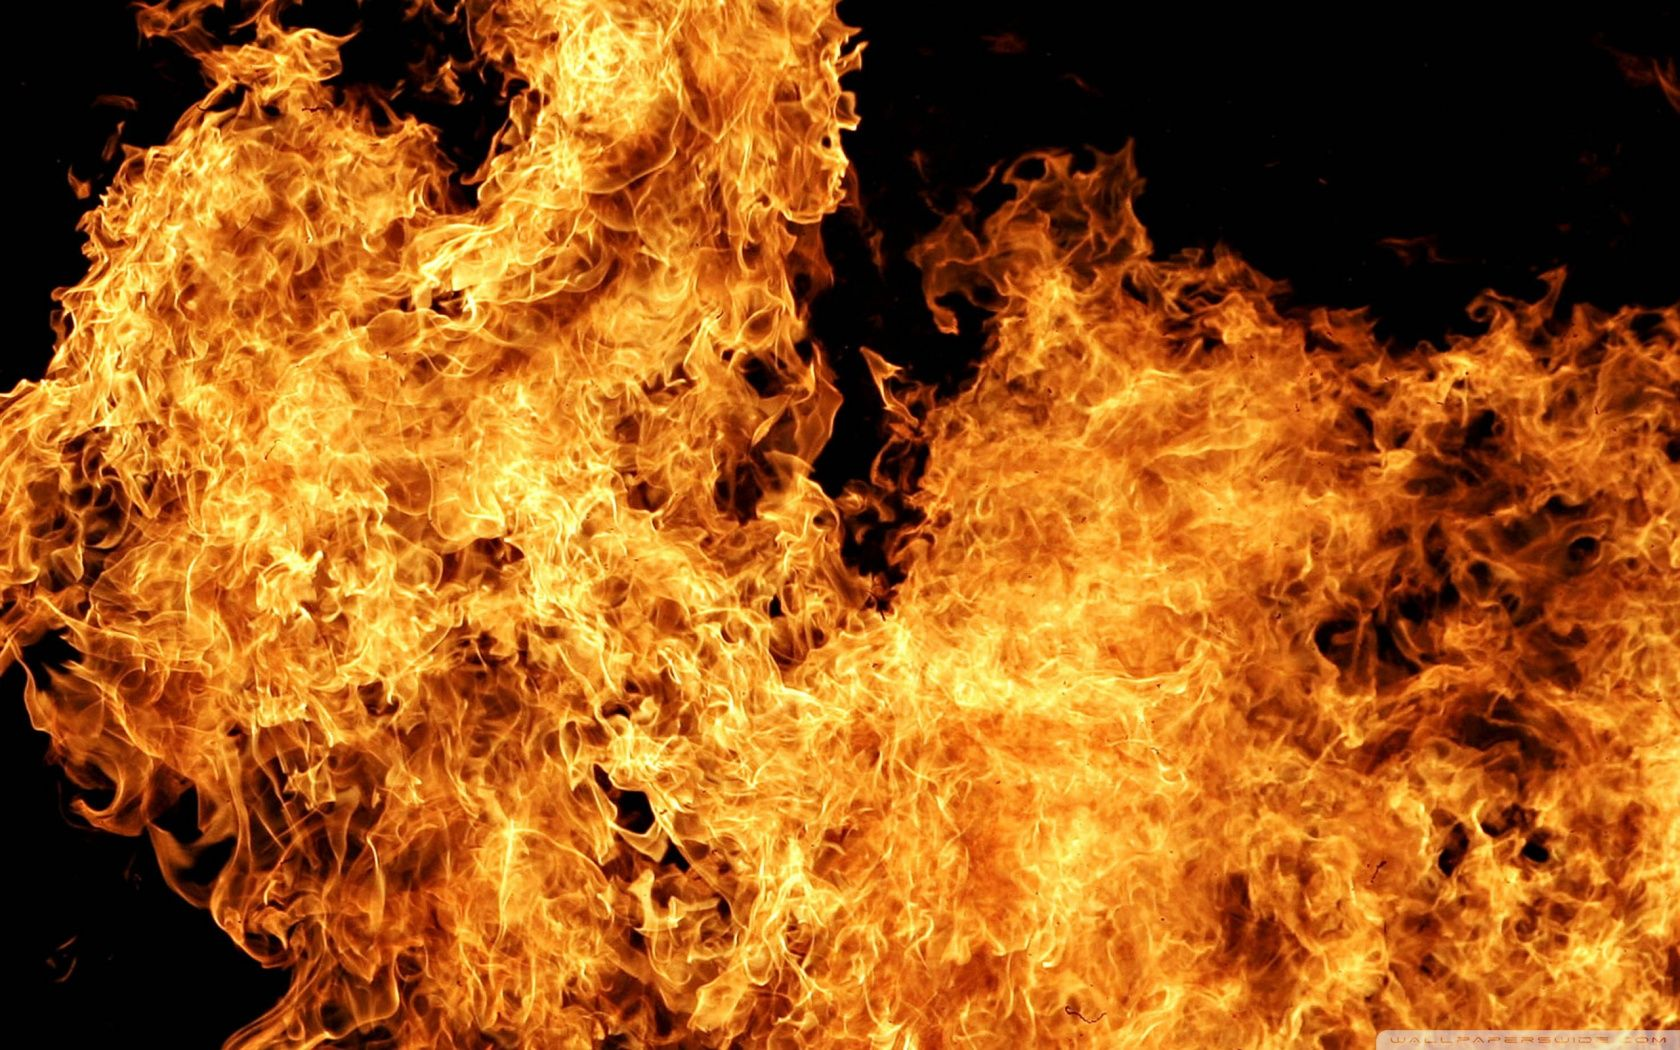 Fire Art Wallpapers Fire Art Fire Image Scary Illusions